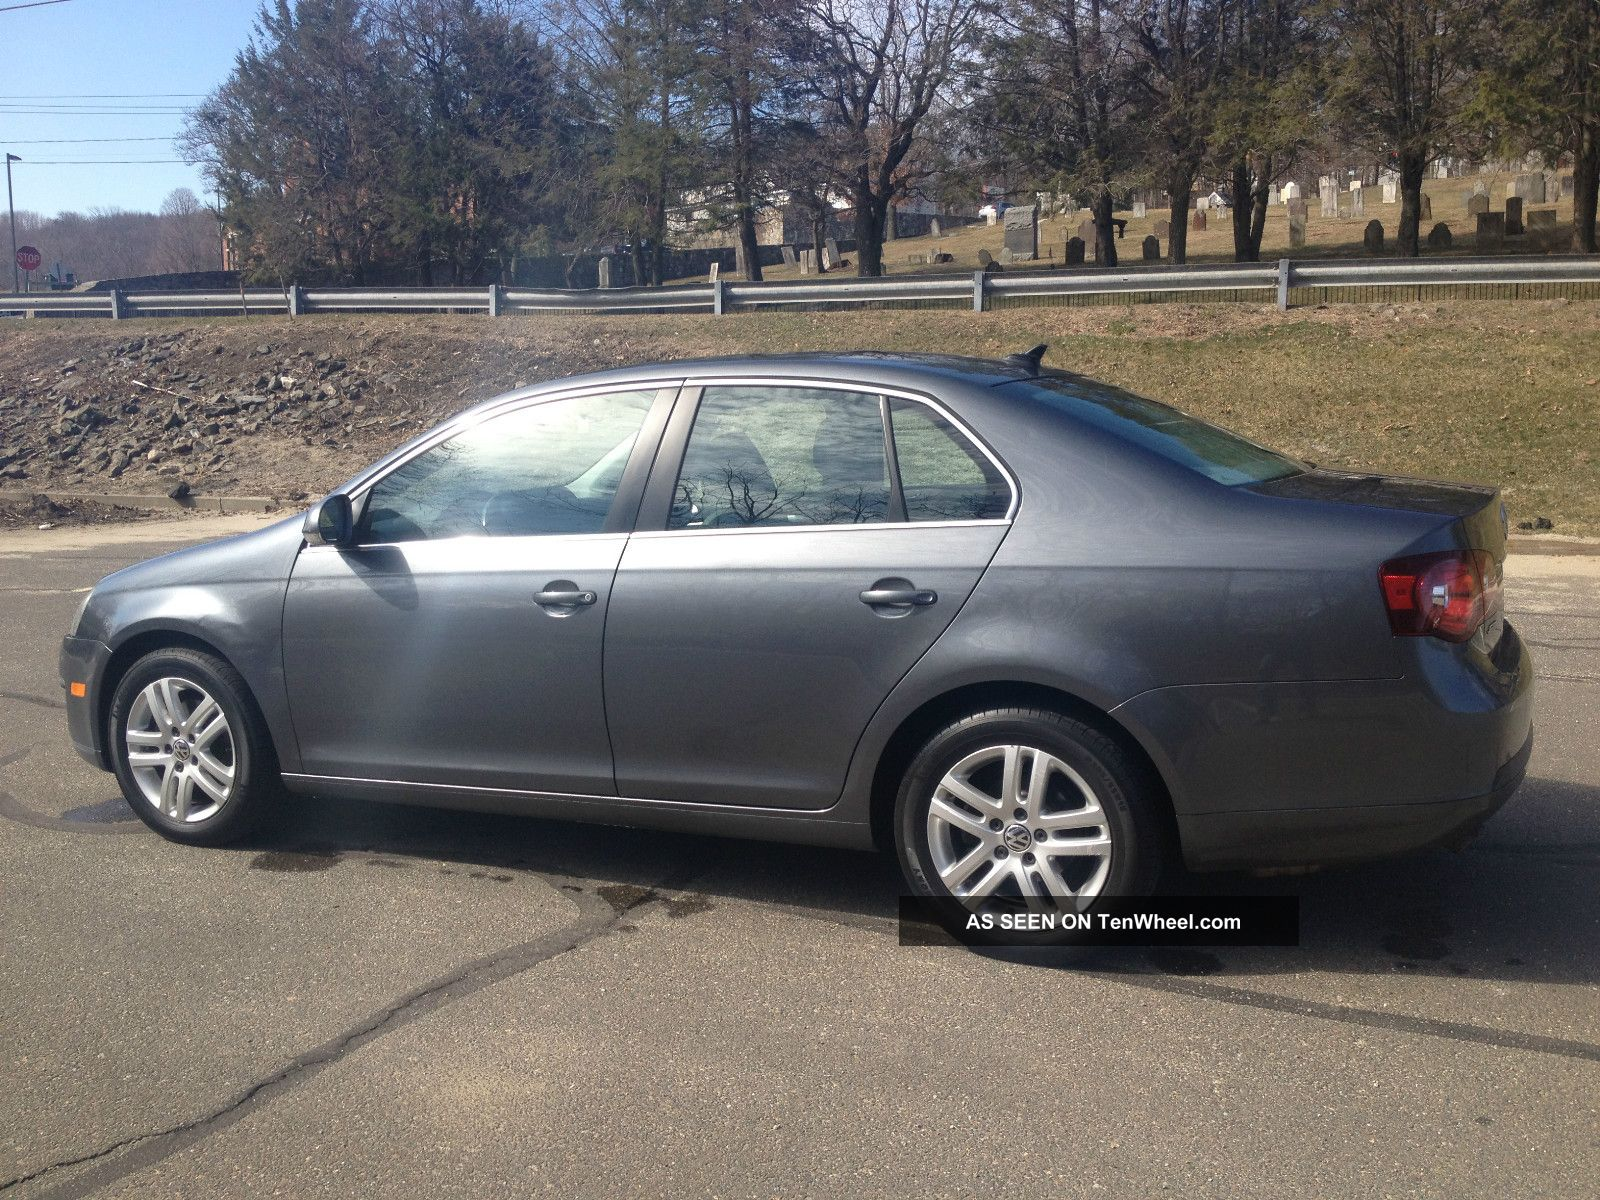 2009 vw jetta tdi turbo diesel 45 mpg fully loaded. Black Bedroom Furniture Sets. Home Design Ideas